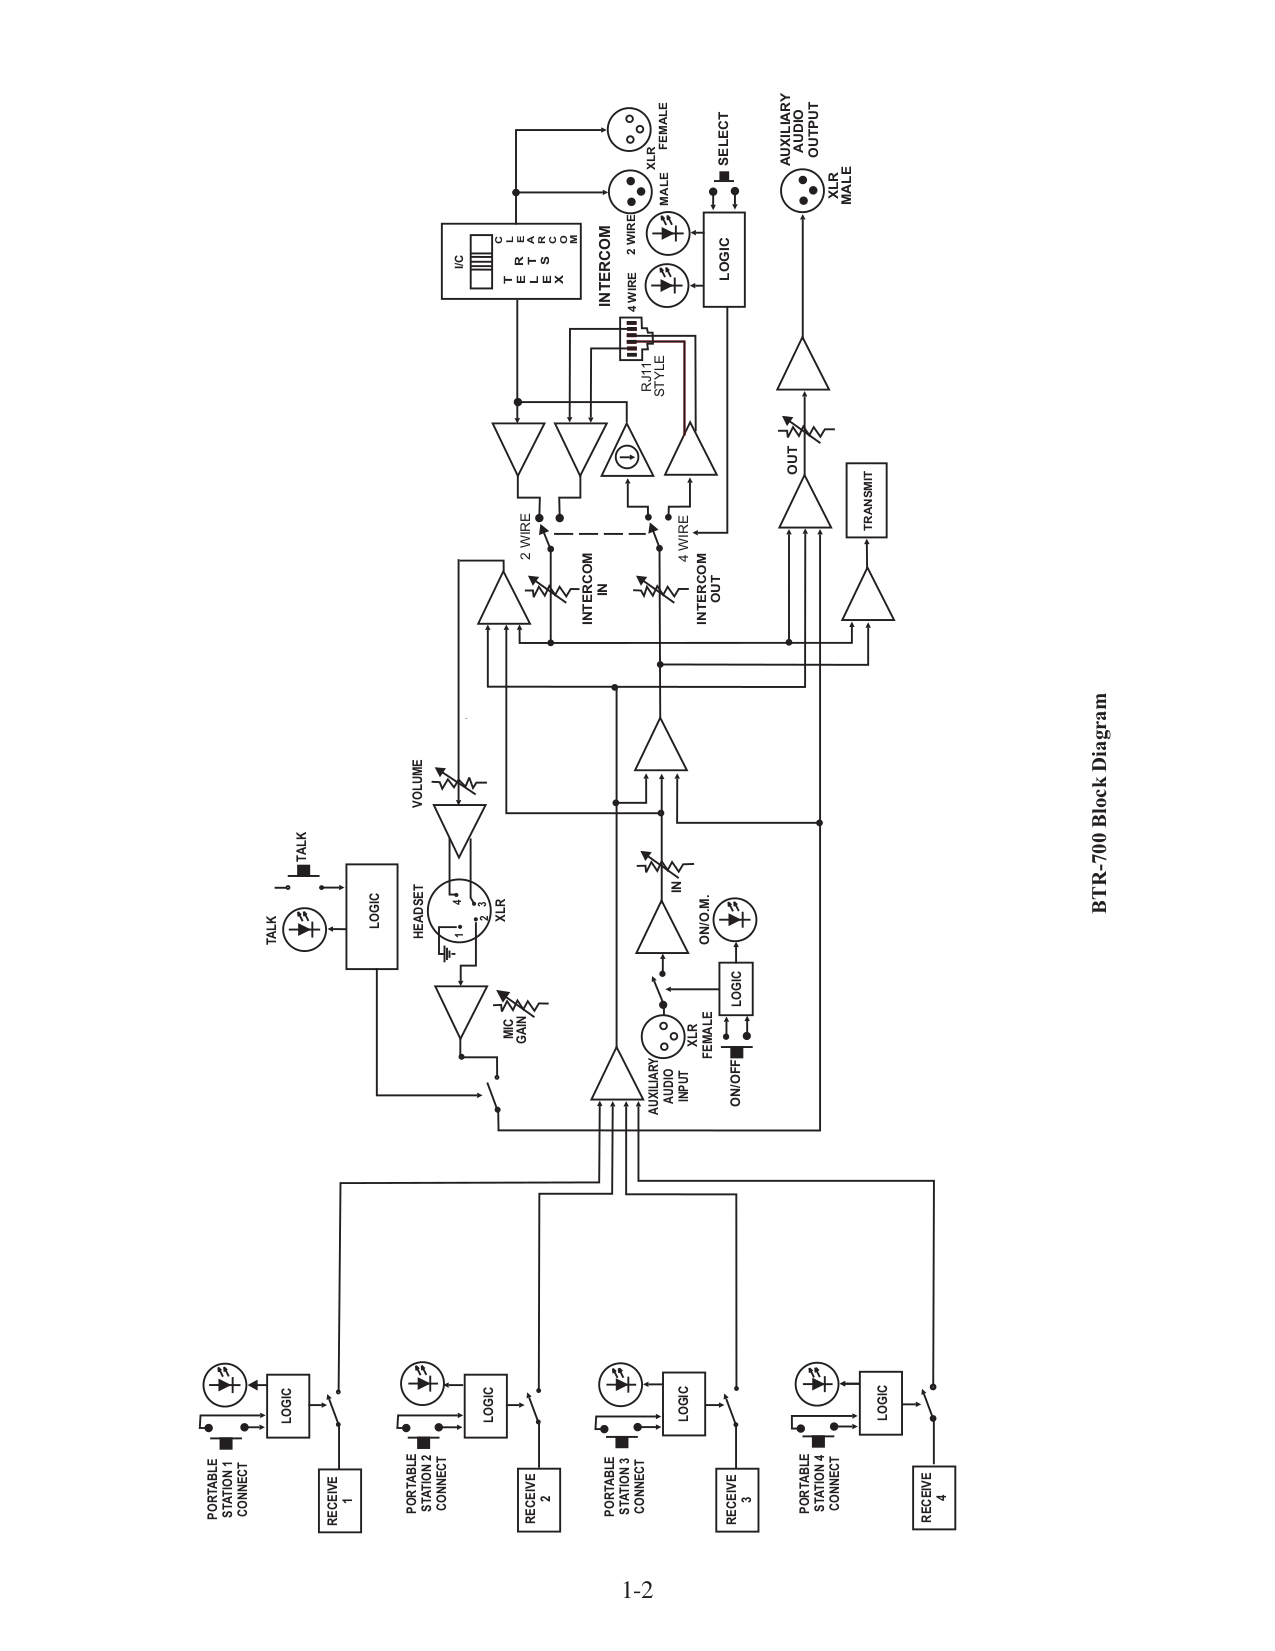 Pdf Manual For Telex Other Btr 700 Intercom System Wiring Diagram Page Preview